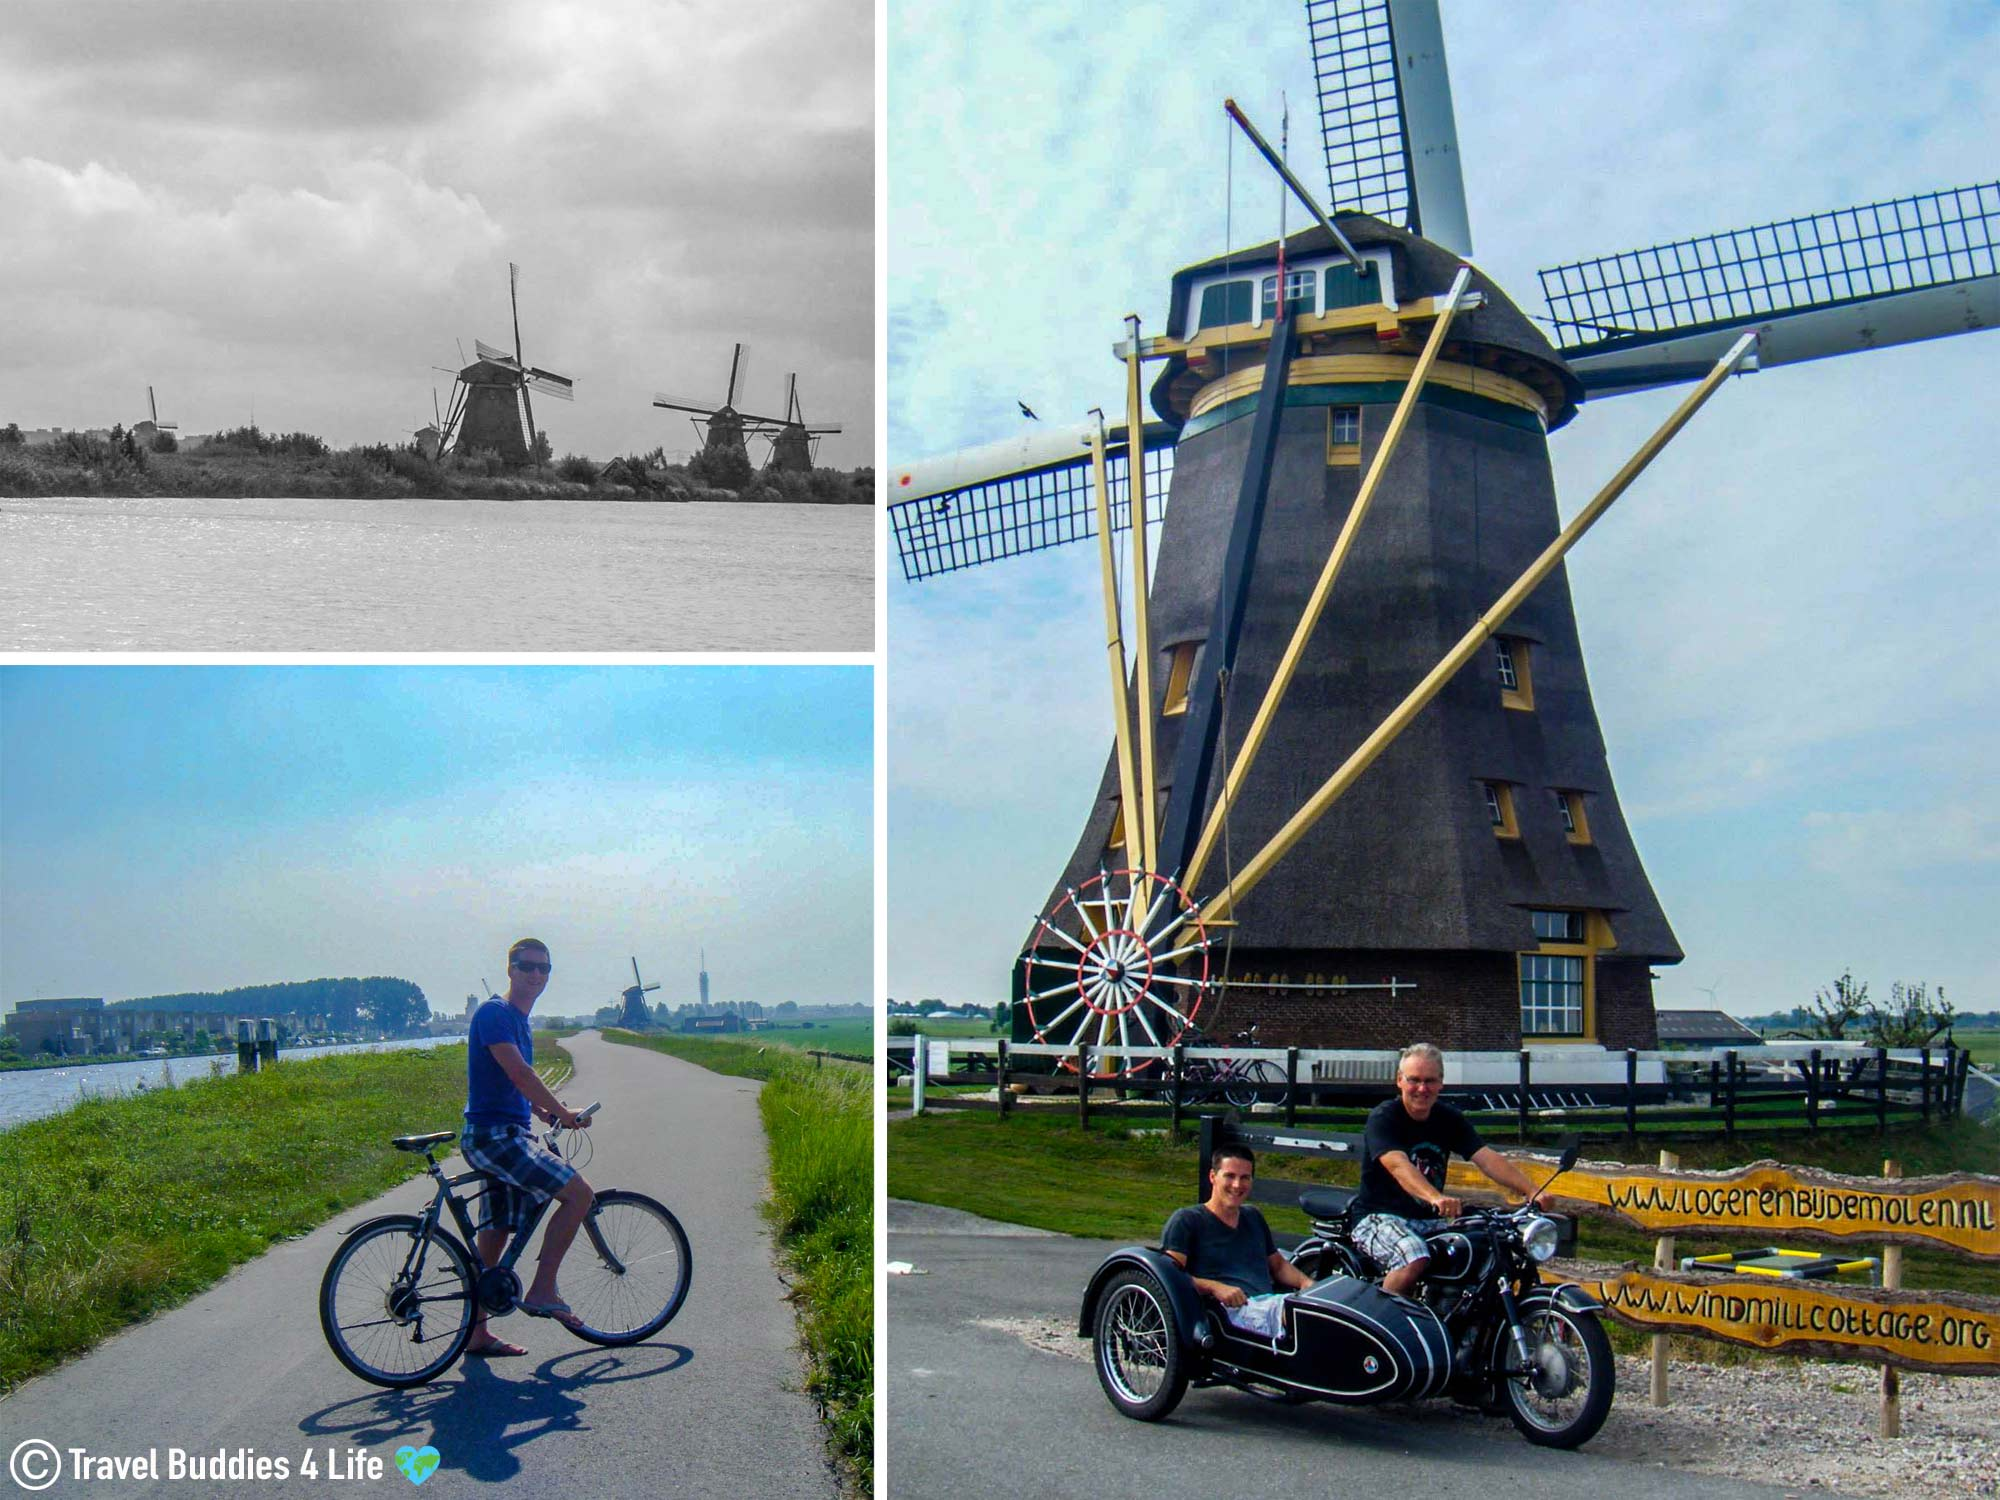 Visiting The Antique Windmills Around The Netherlands Via Motorcycle, Bike And On Foot, Europe